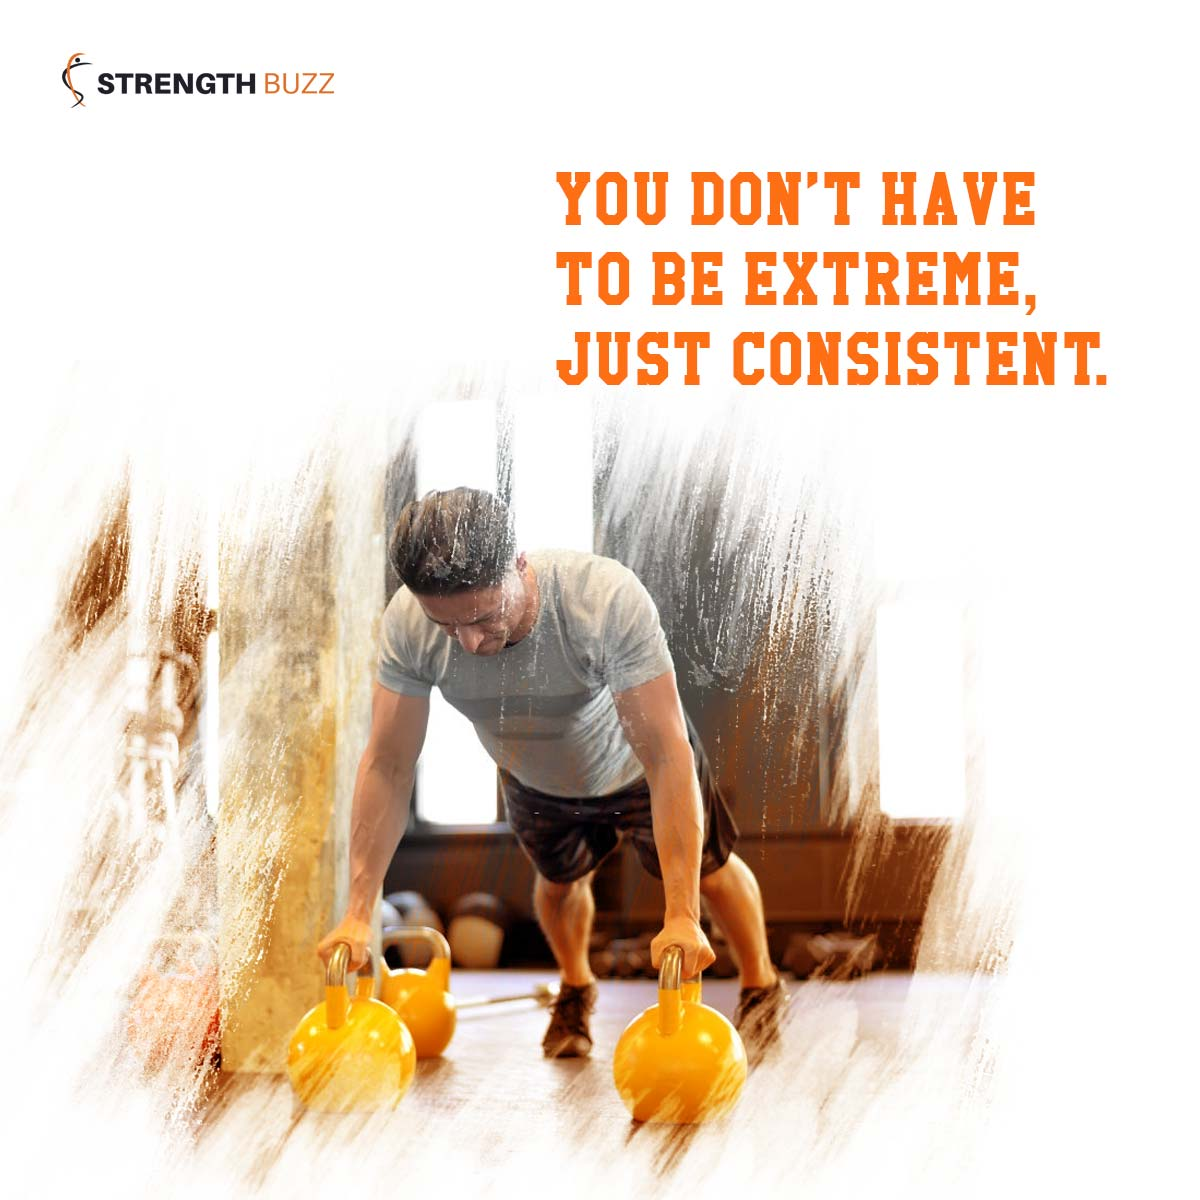 Gym Motivation Quotes - You don't have to be extreme, just consistent